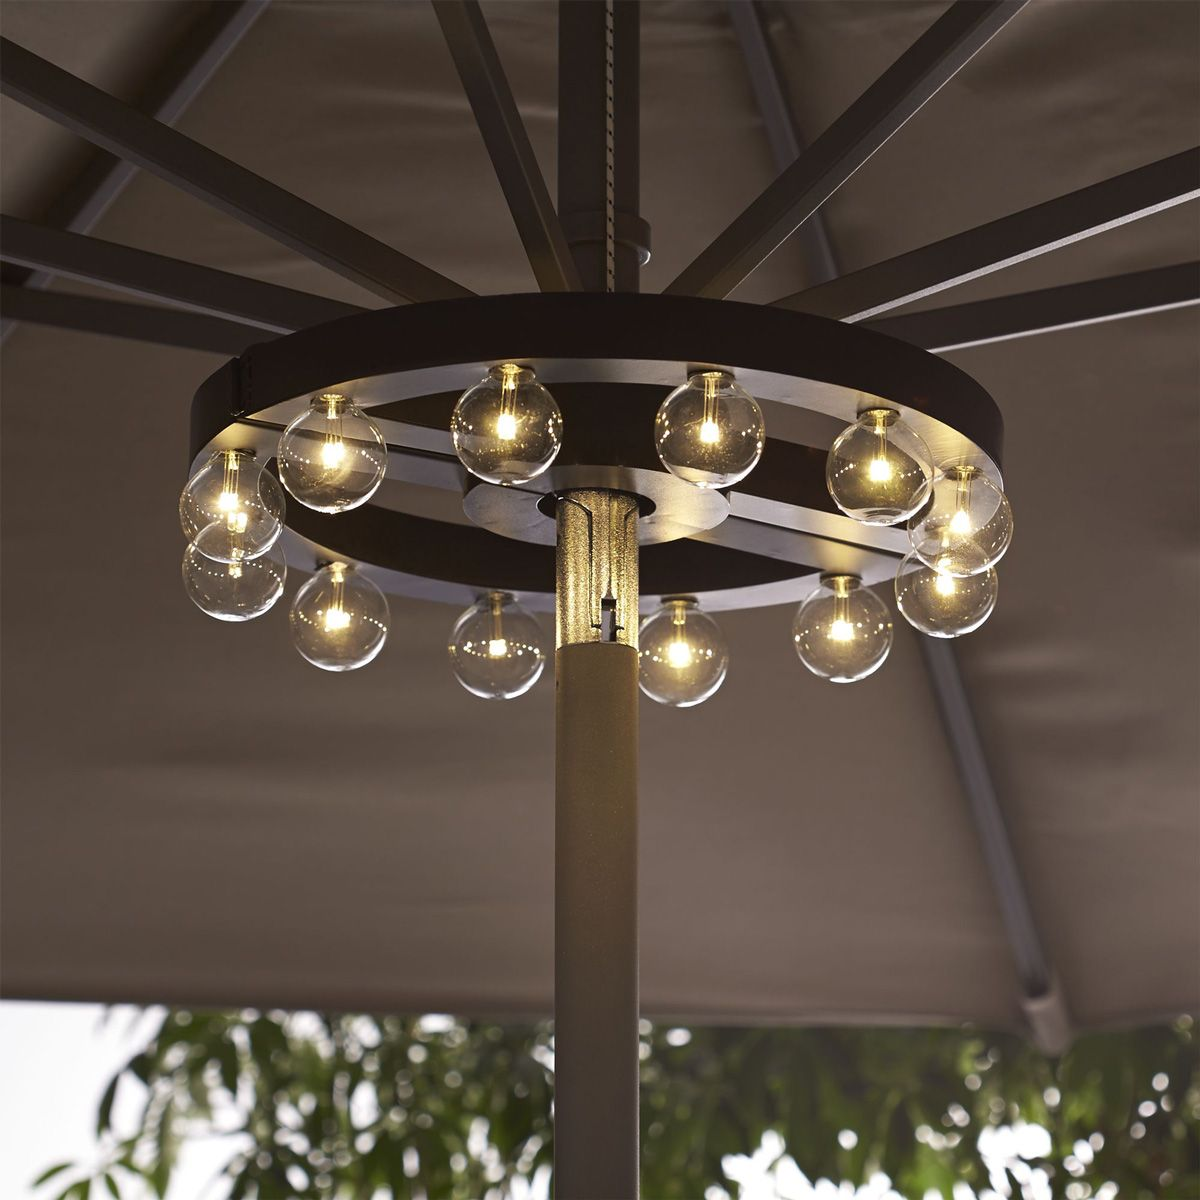 Solar Umbrella Clip Lights Cool Patio Umbrella Marquee Lights  Pinterest  Patio Umbrellas Marquee Design Ideas